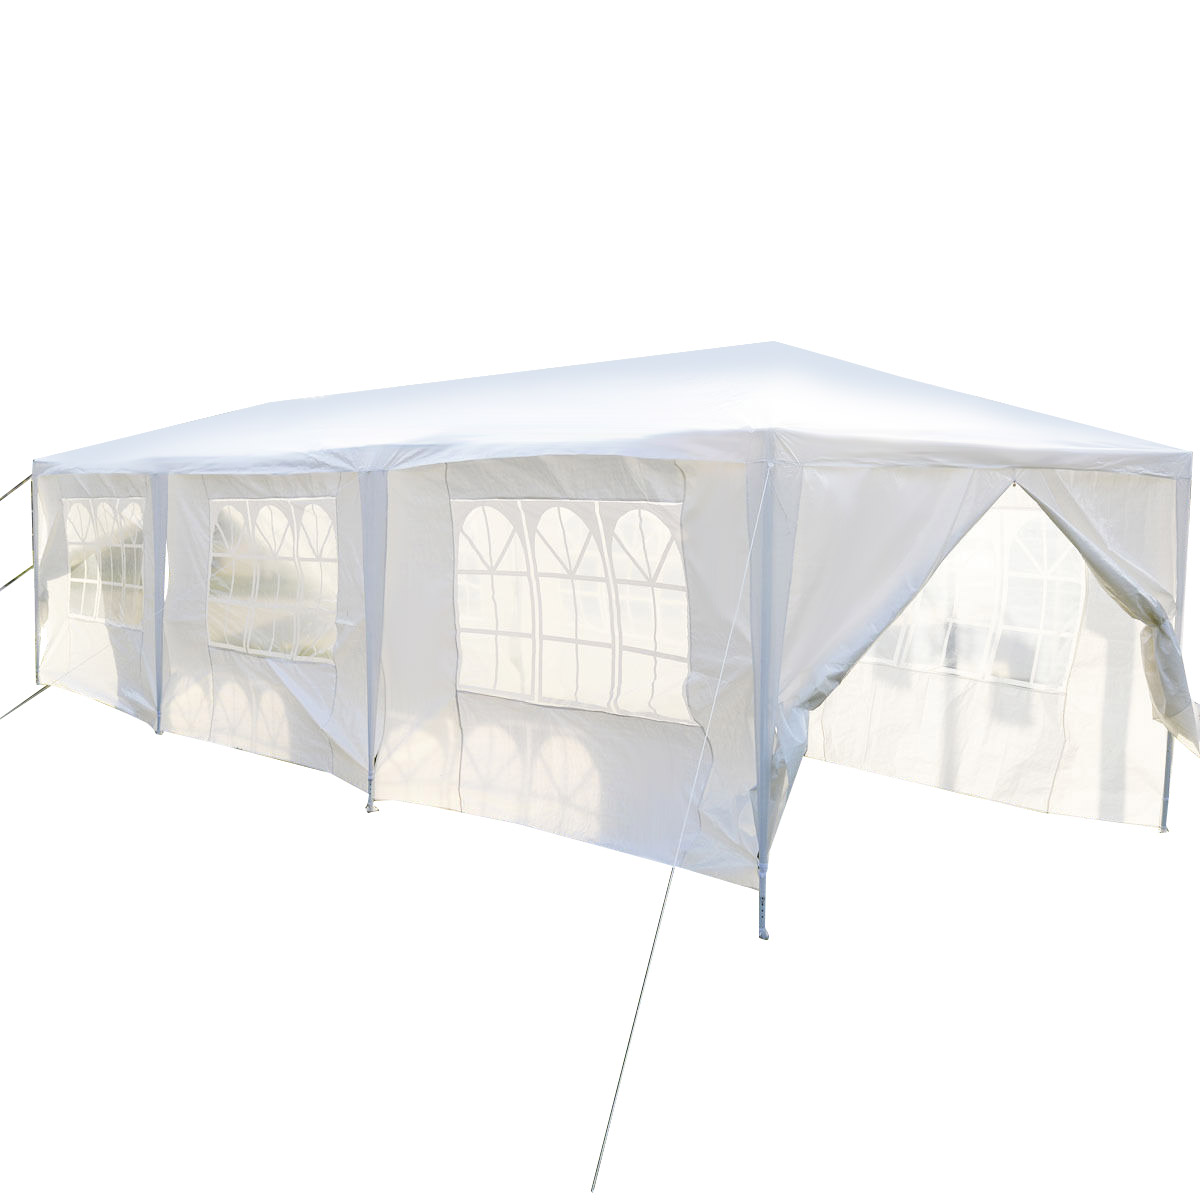 Gymax White Wedding Tent 10'x30'Outdoor Party Canopy Events - image 9 of 10